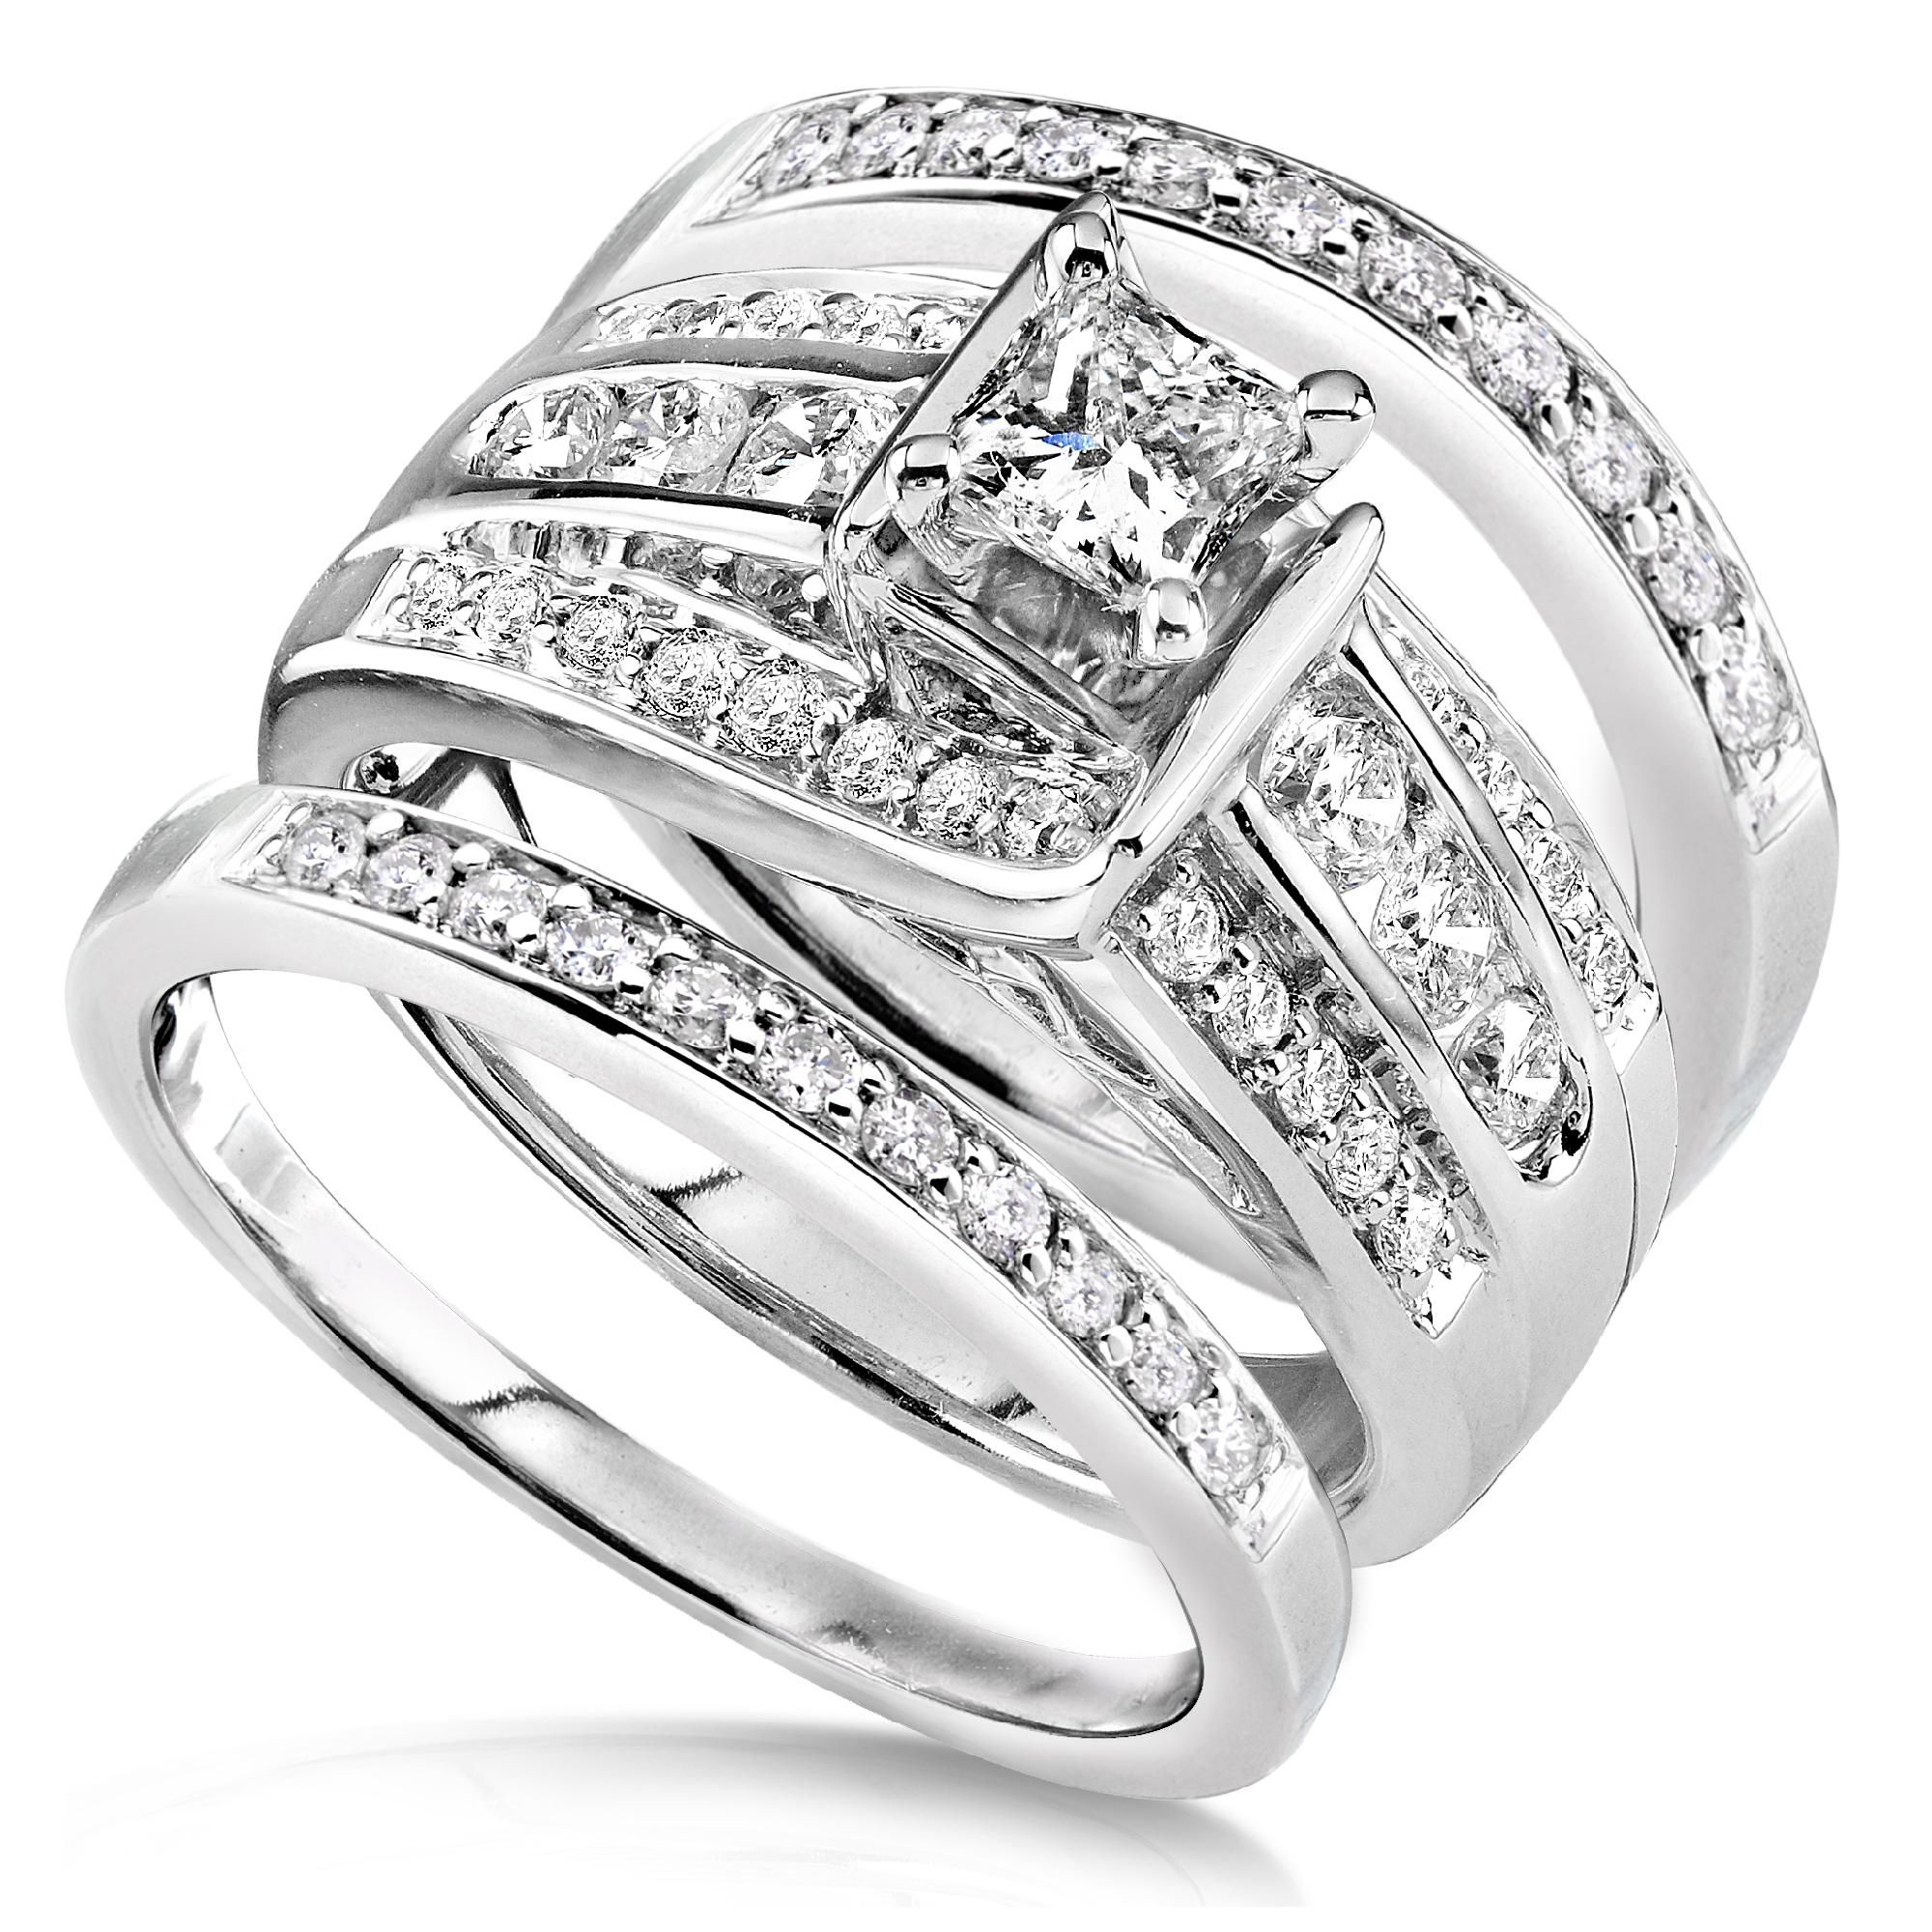 pictures gallery of kmart wedding ring sets spectacular spin - Kmart Wedding Ring Sets